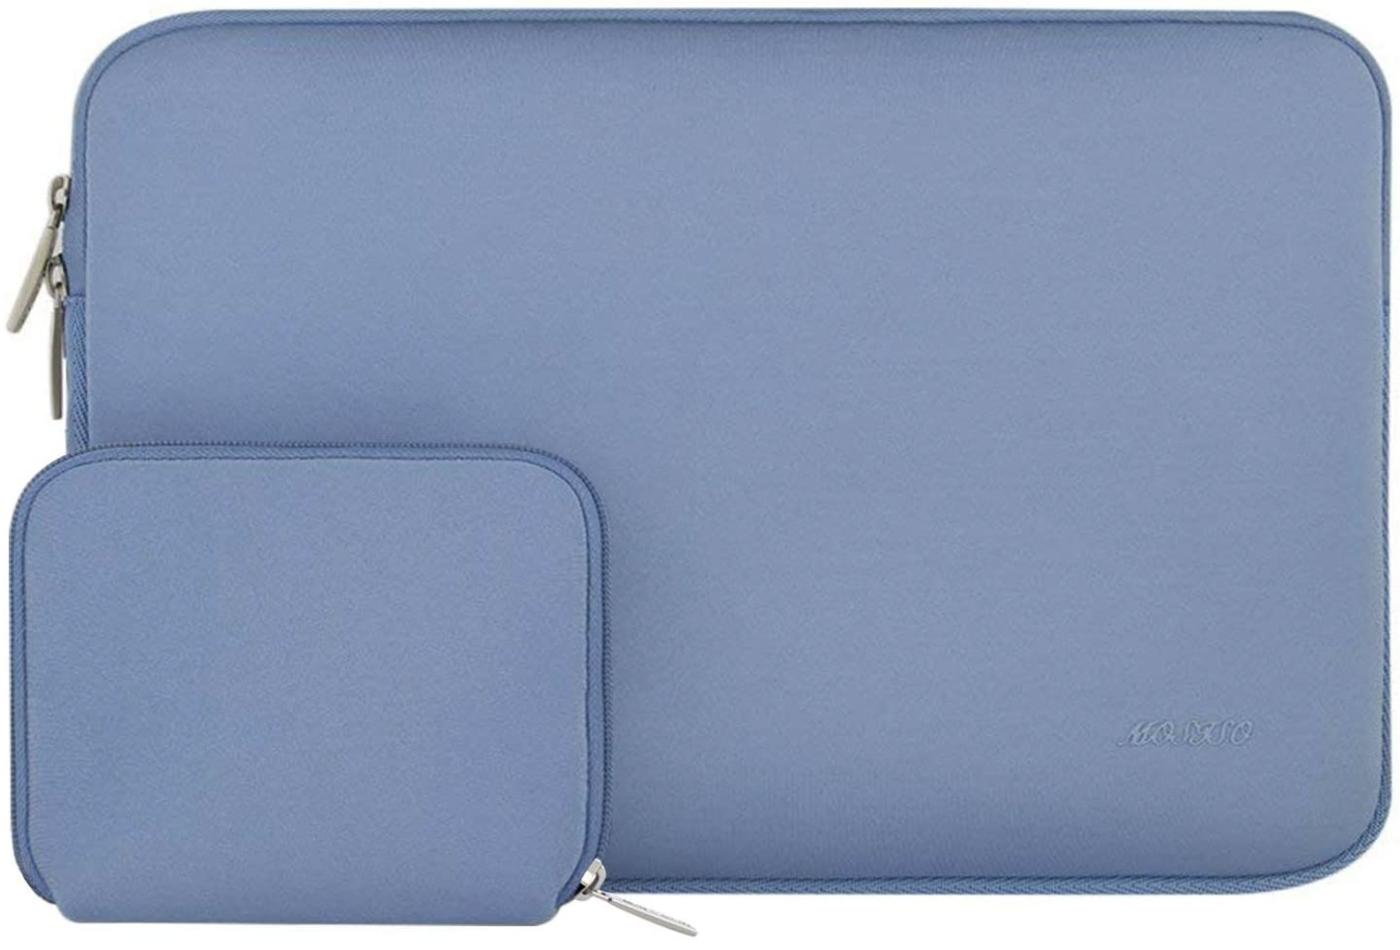 MOSISO Laptop Sleeve Small Case Render Cropped